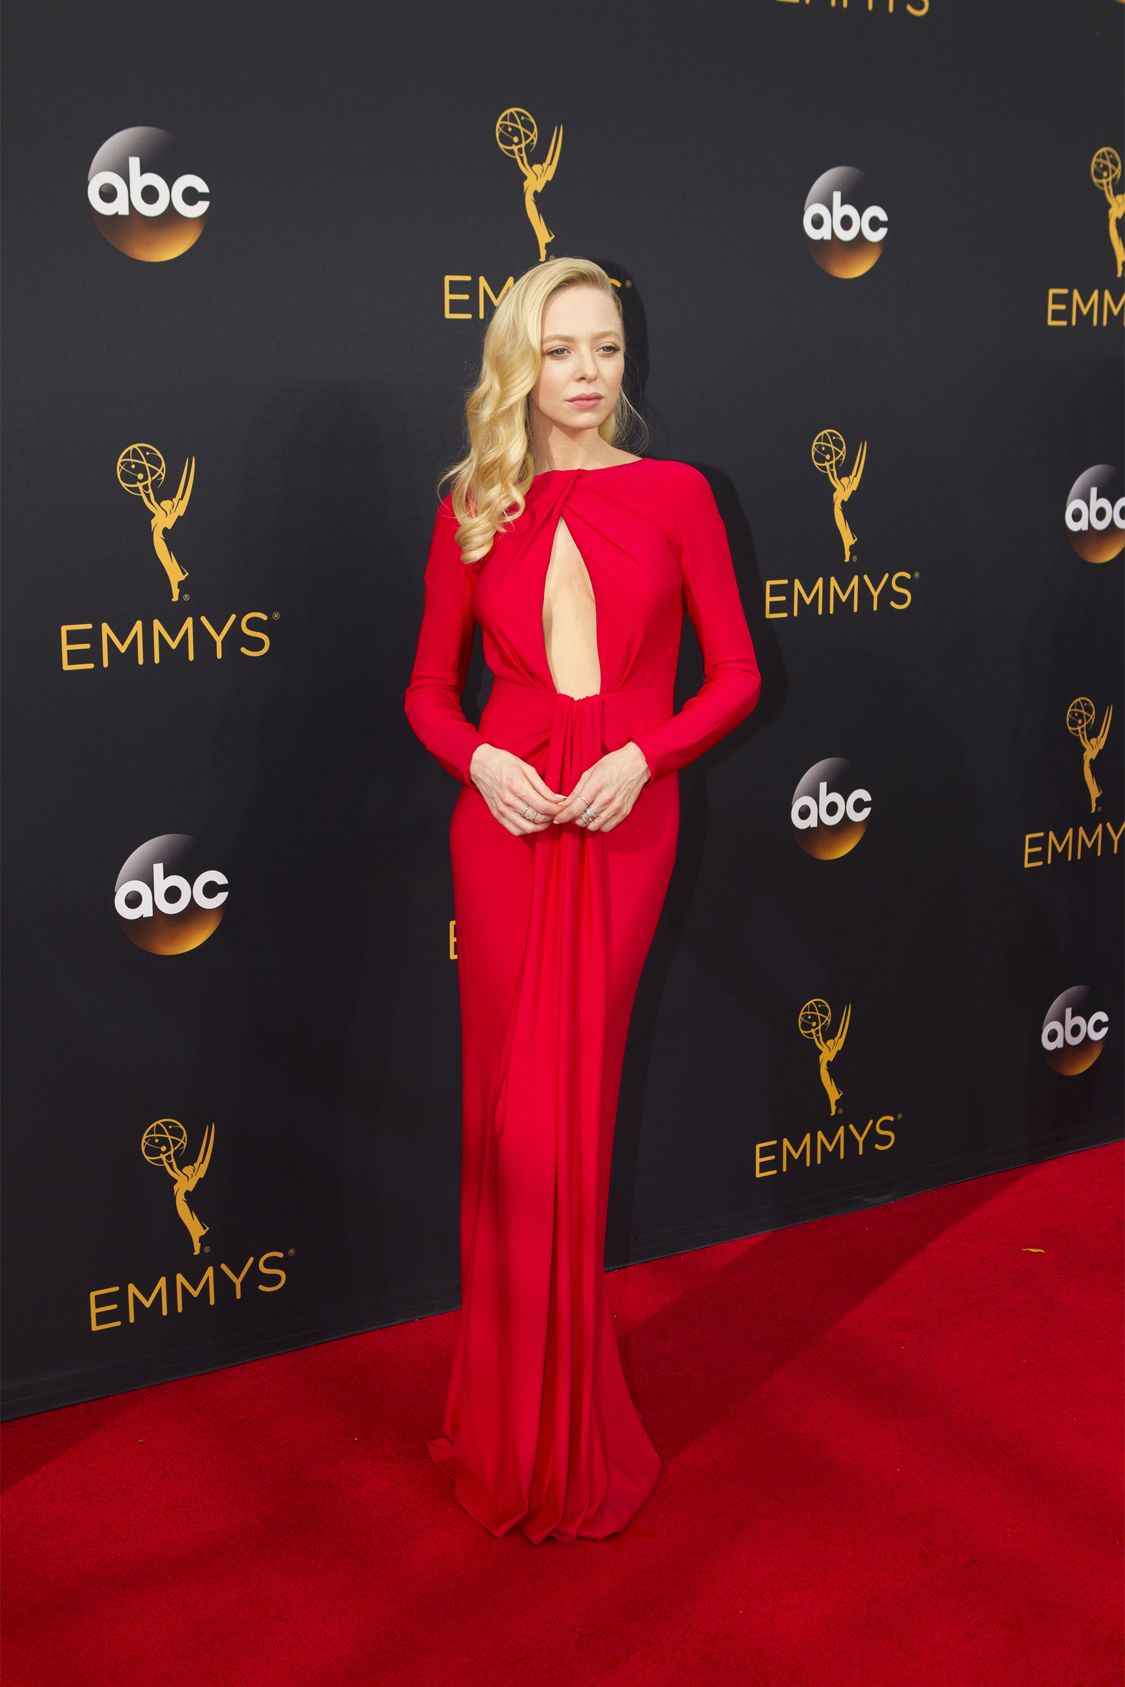 """THE 68TH EMMY(r) AWARDS - """"The 68th Emmy Awards"""" broadcasts live from The Microsoft Theater in Los Angeles, Sunday, September 18 (7:00-11:00 p.m. EDT/4:00-8:00 p.m. PDT), on ABC and is hosted by Jimmy Kimmel. (ABC/Rick Rowell)"""